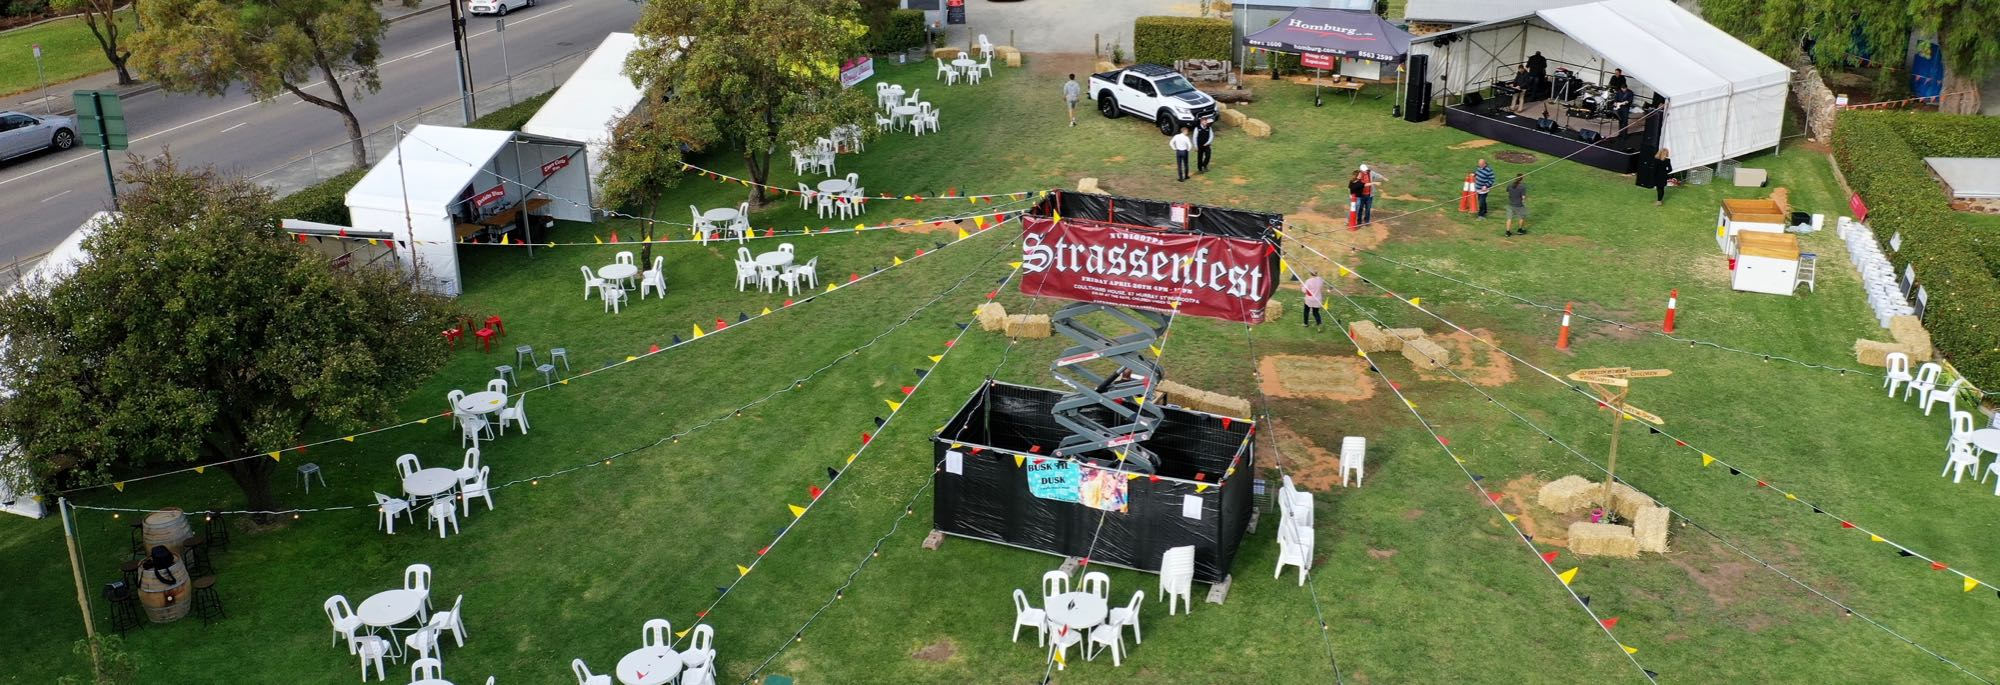 Barossa Vintage Festival Success